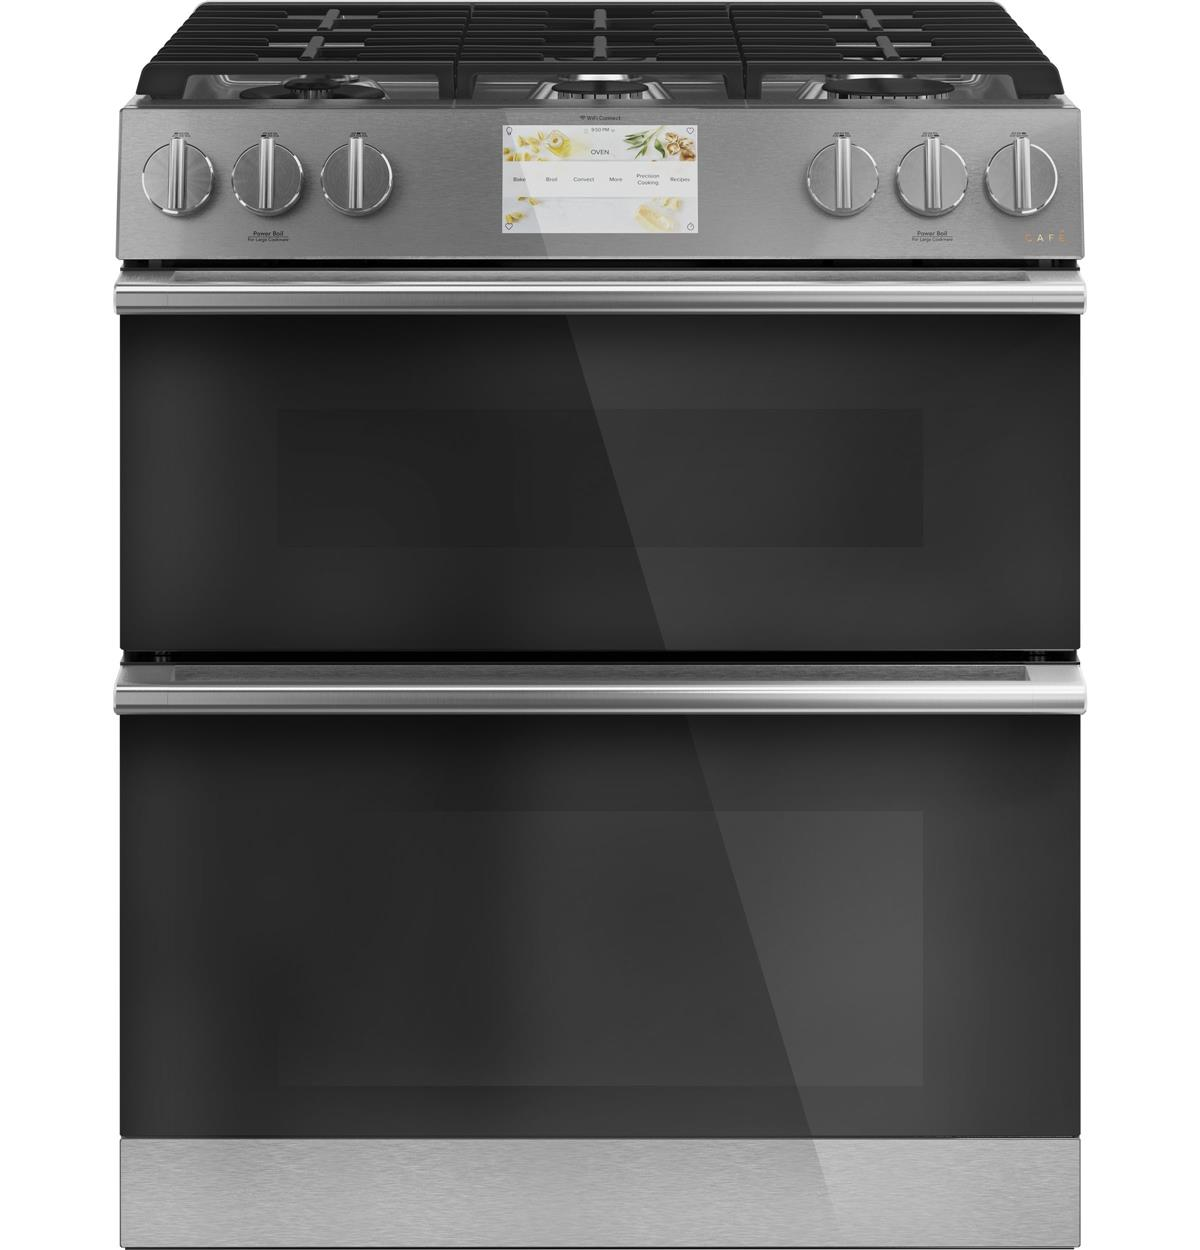 "Café™ 30"" Smart Slide-In, Front-Control, Dual-Fuel, Double-Oven Range with Convection in Platinum Glass"